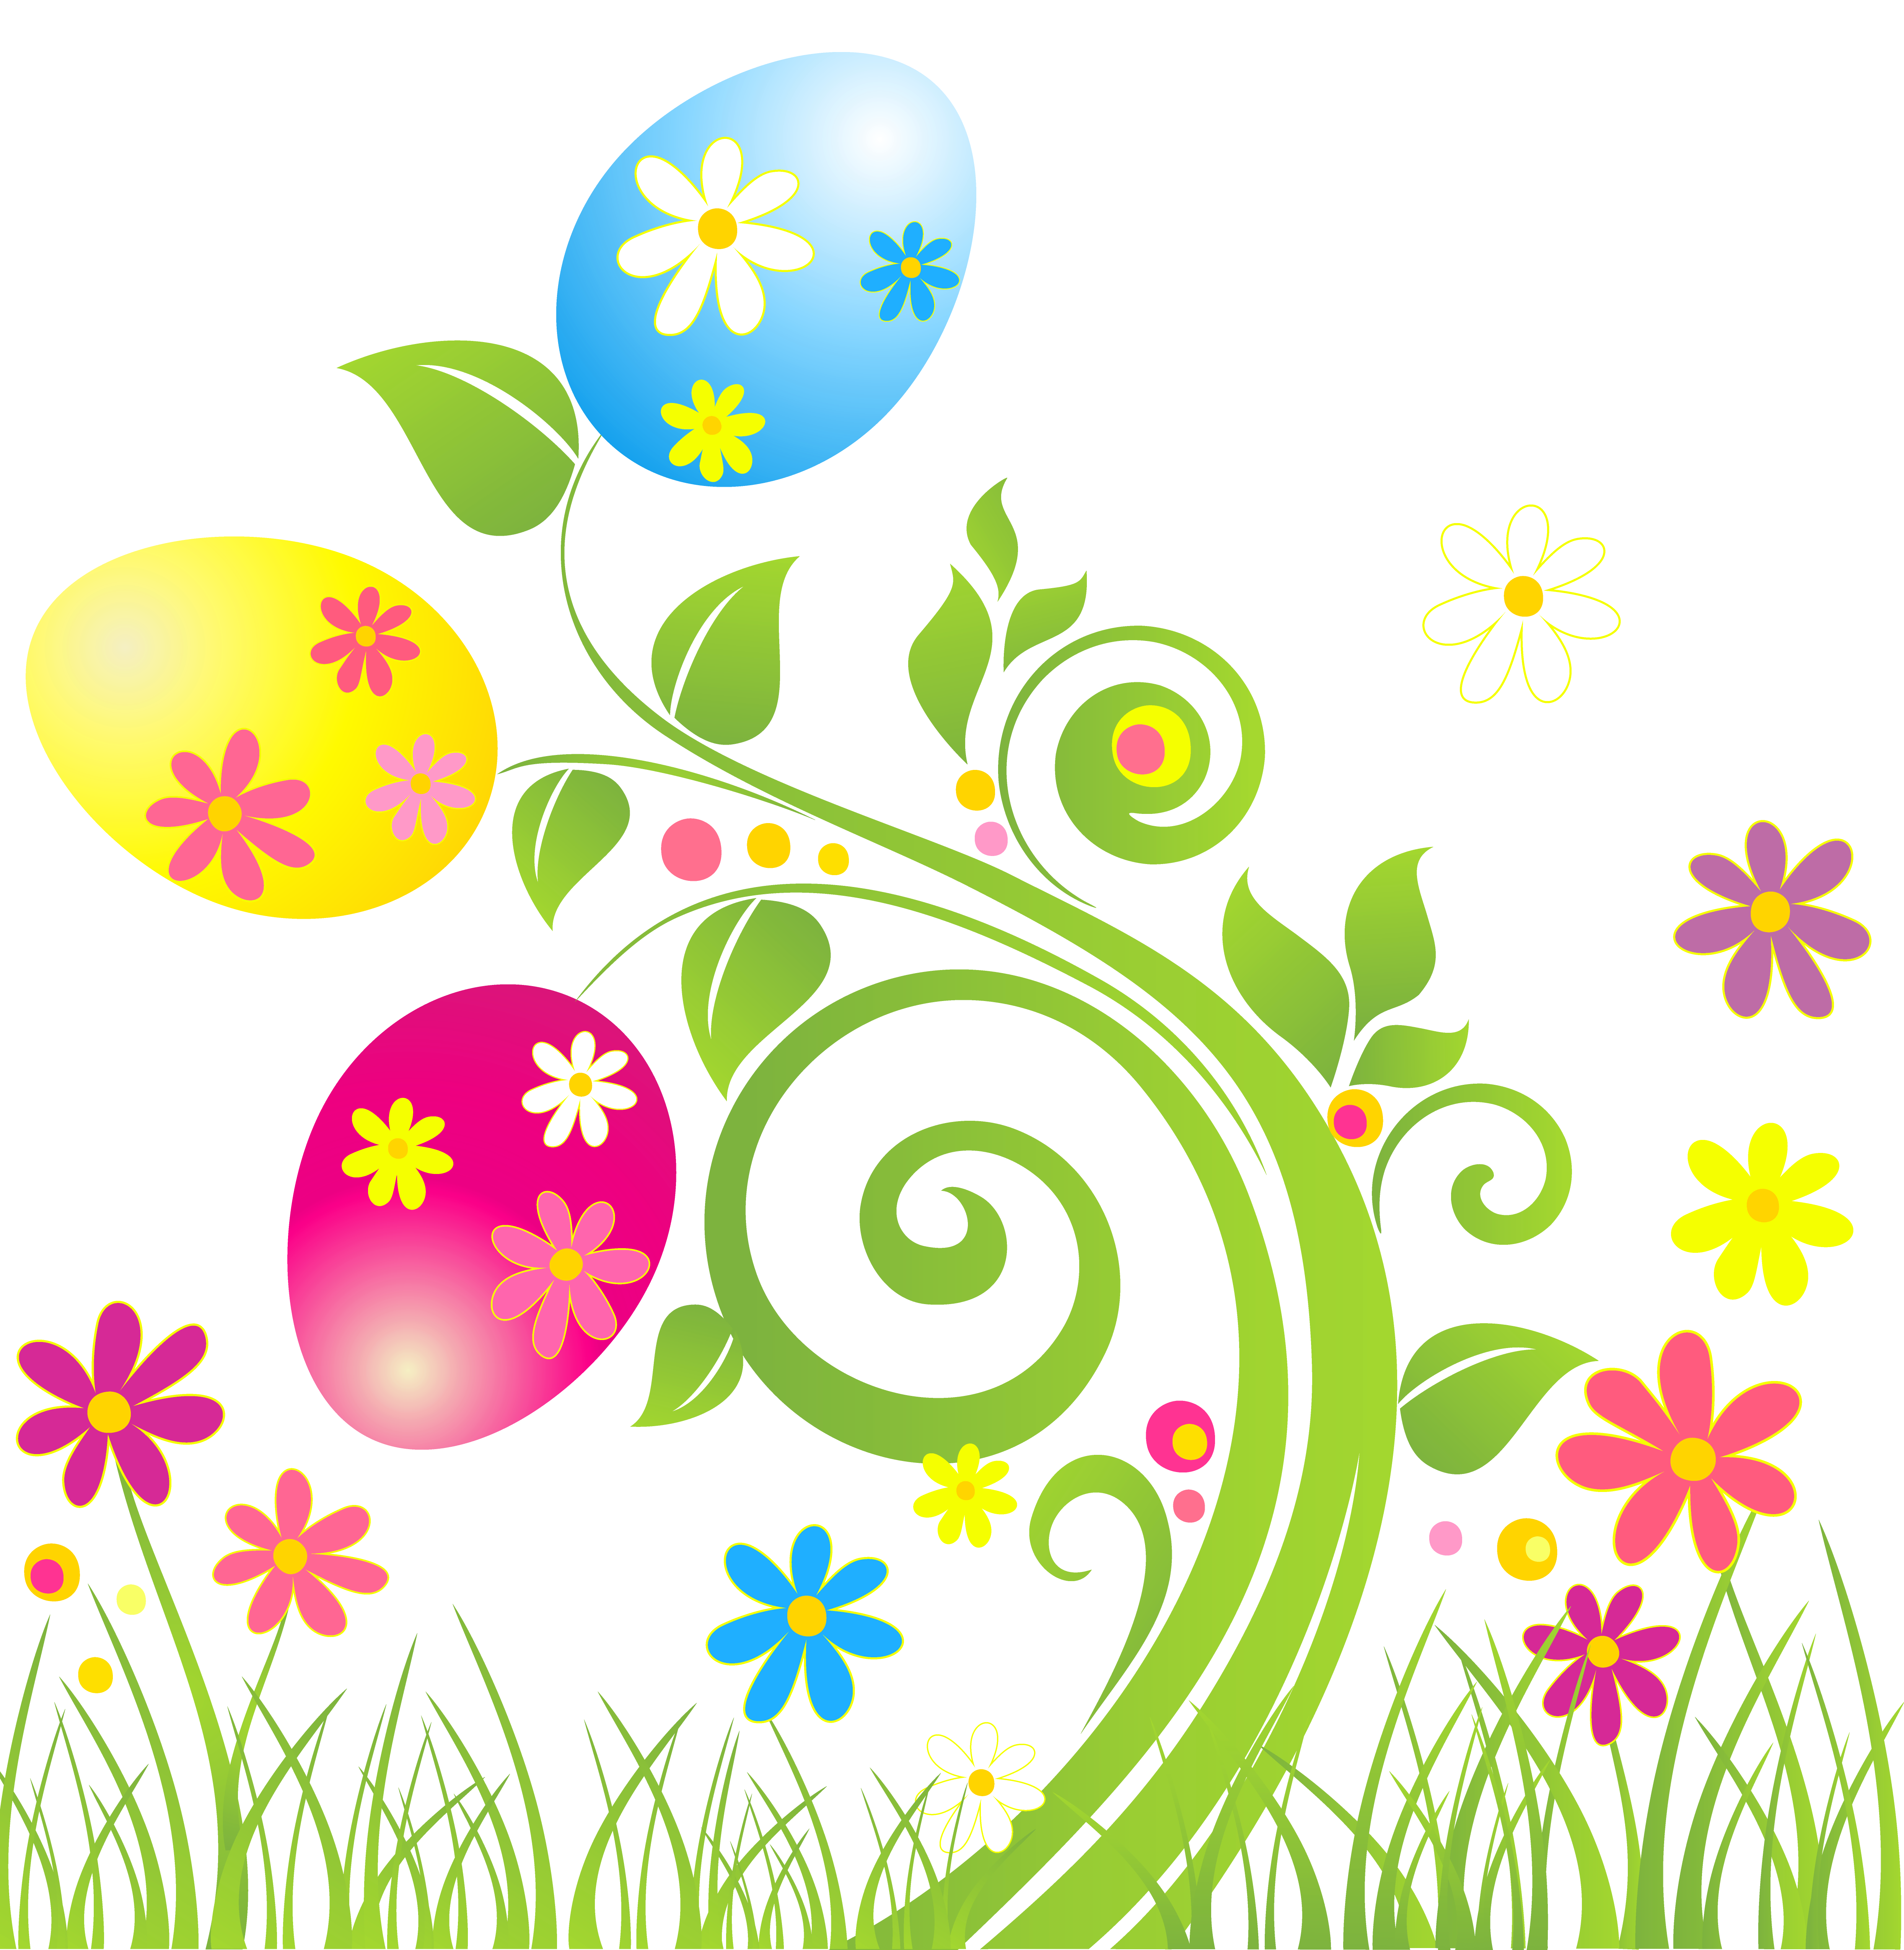 Free easter flower clipart picture royalty free download Free Easter Flowers Cliparts, Download Free Clip Art, Free Clip Art ... picture royalty free download